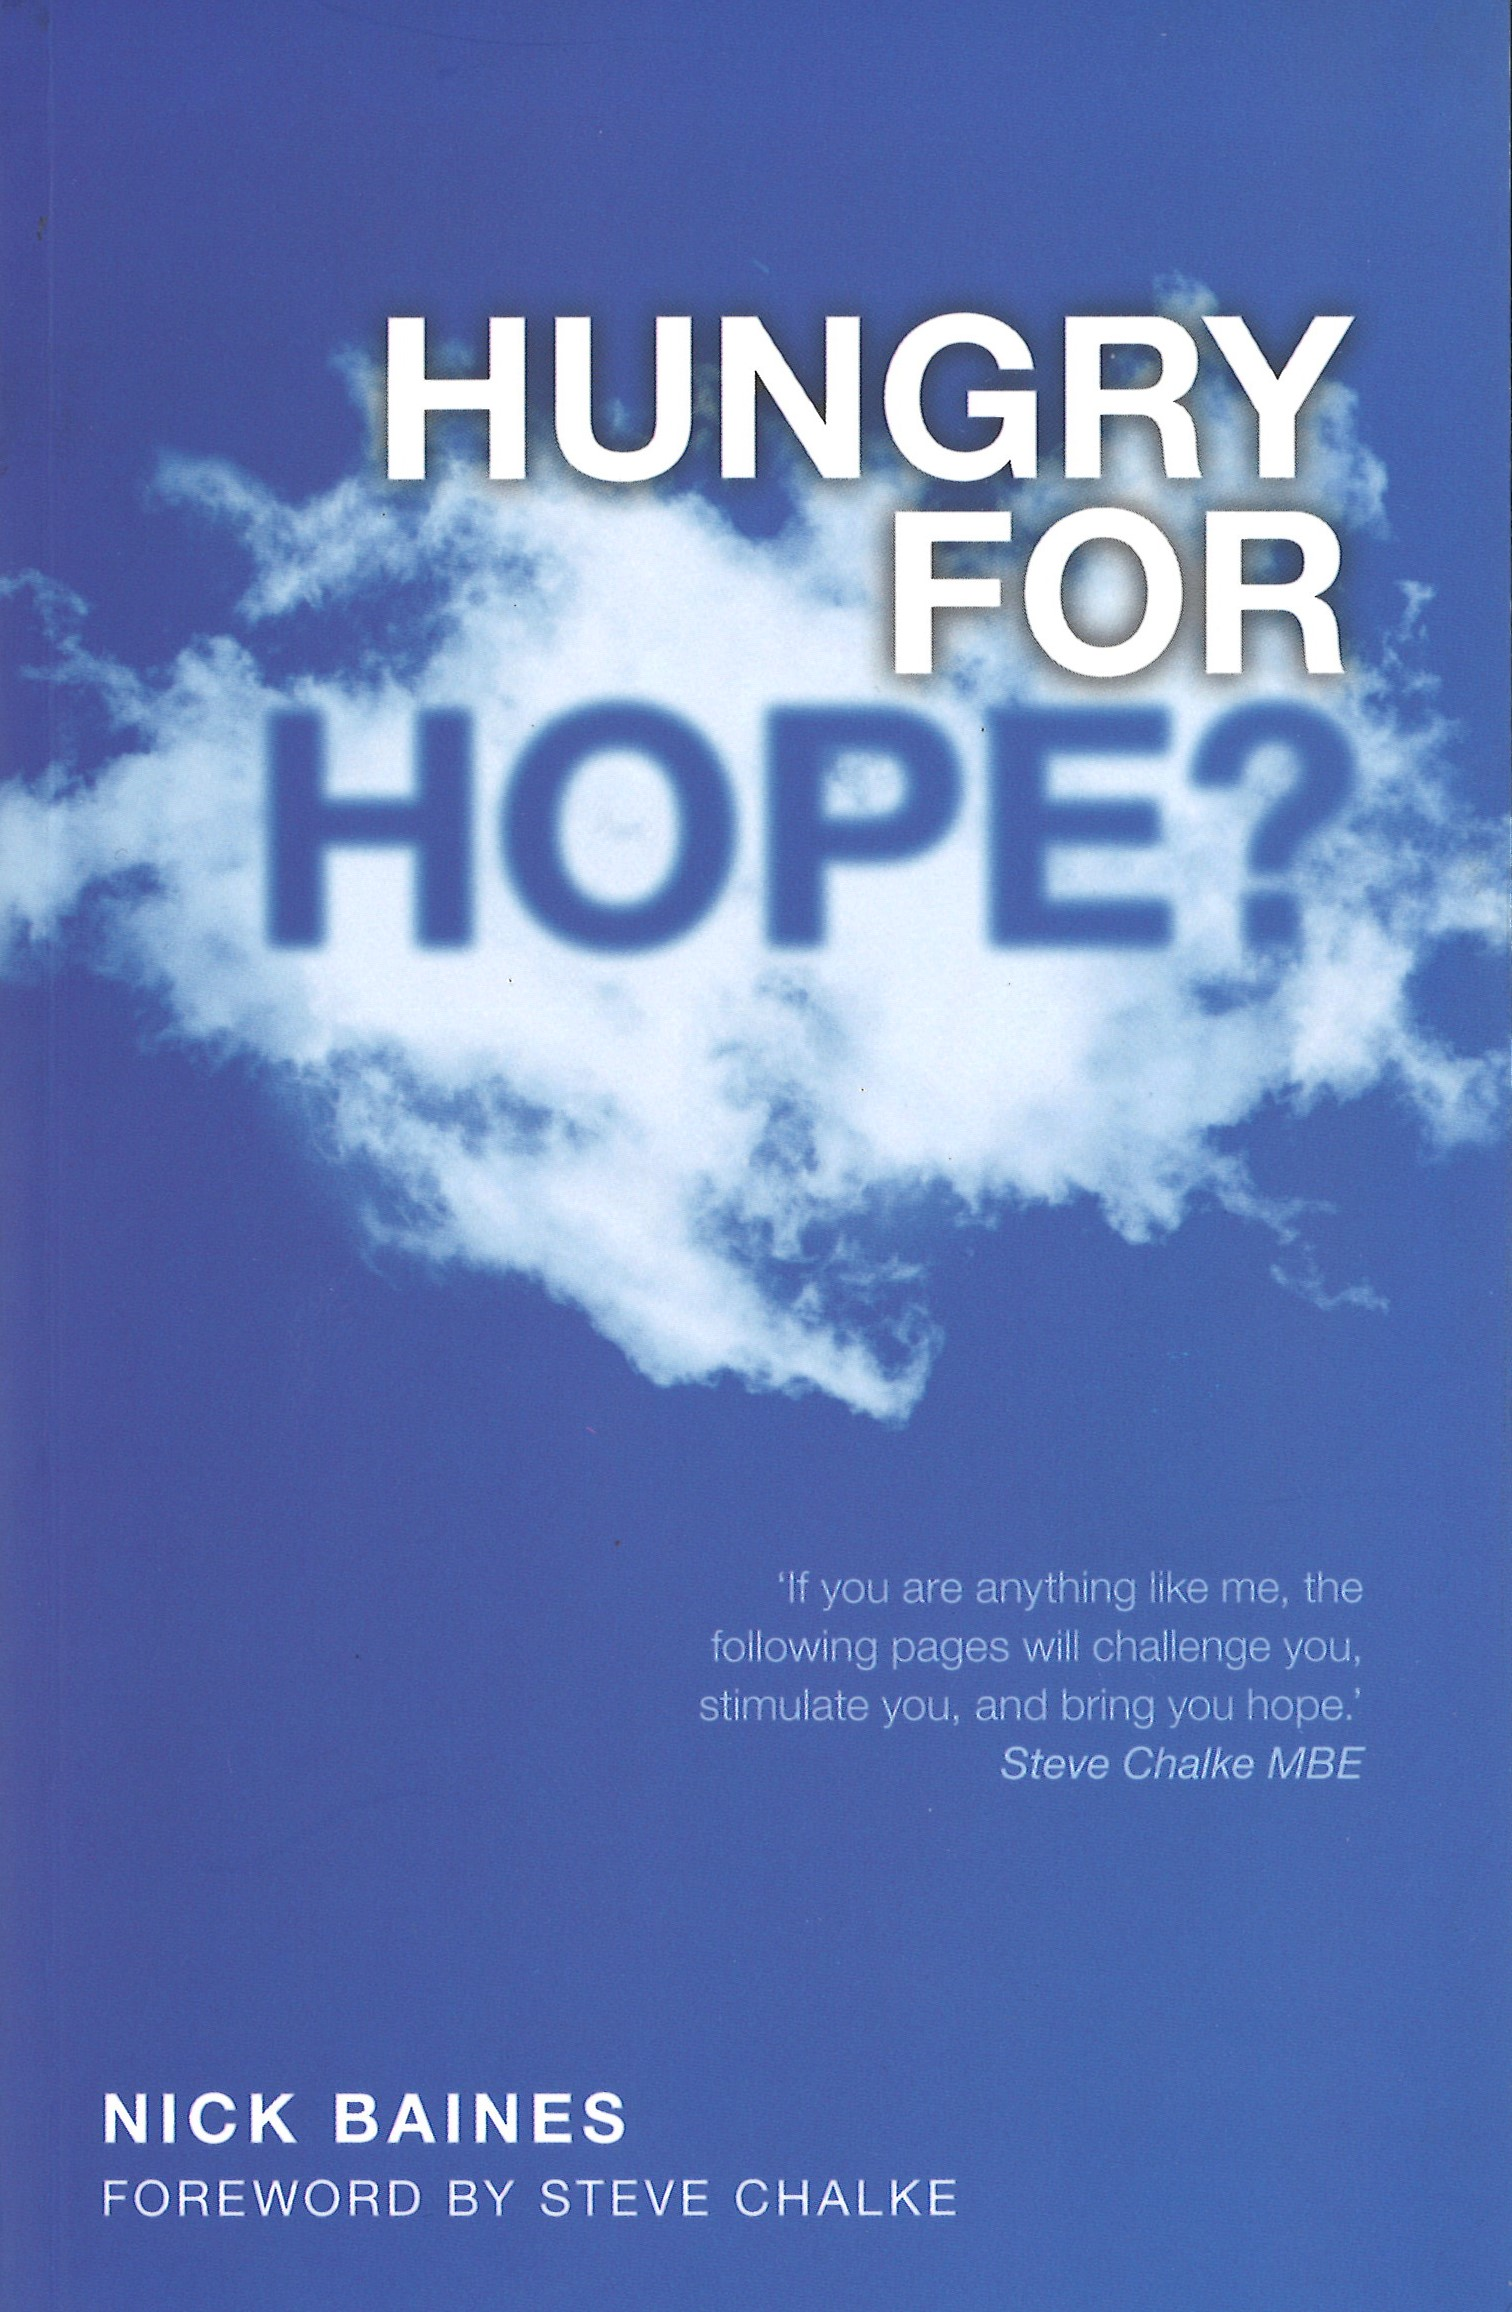 Hungry for Hope?